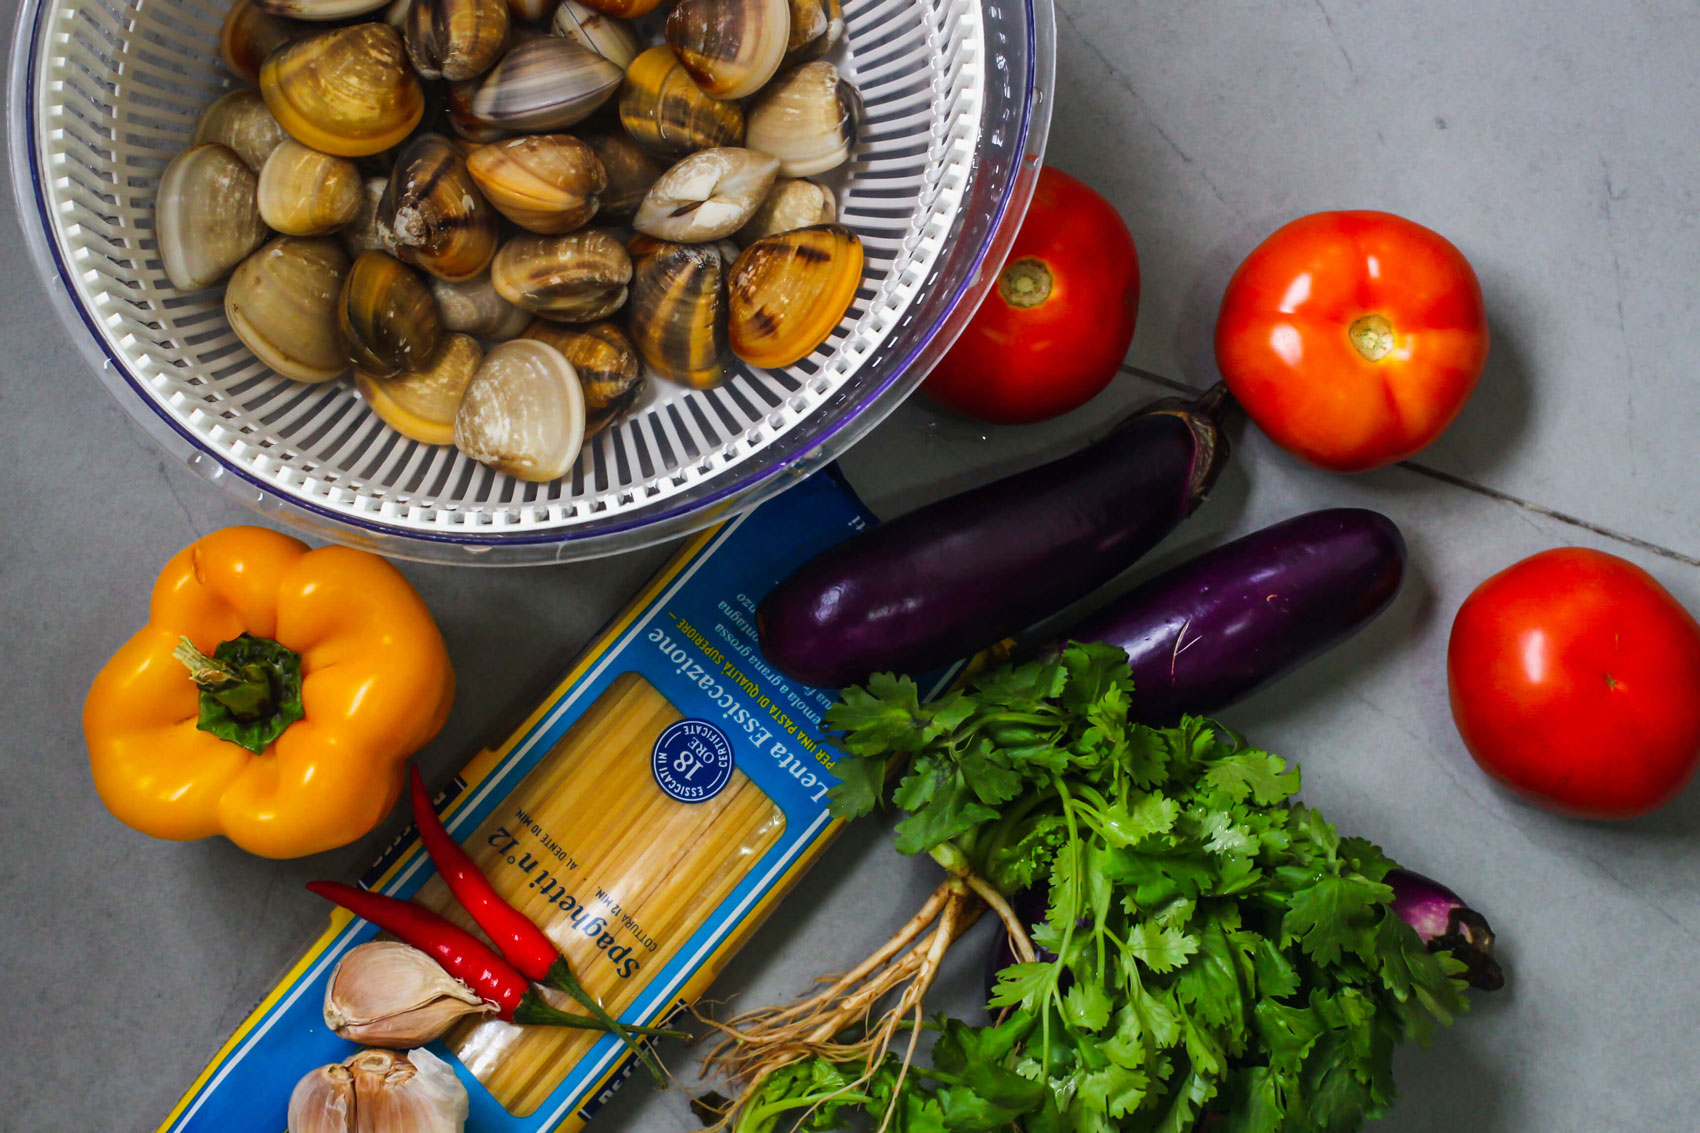 Some of the ingredients used for Spicy Clam Pasta.